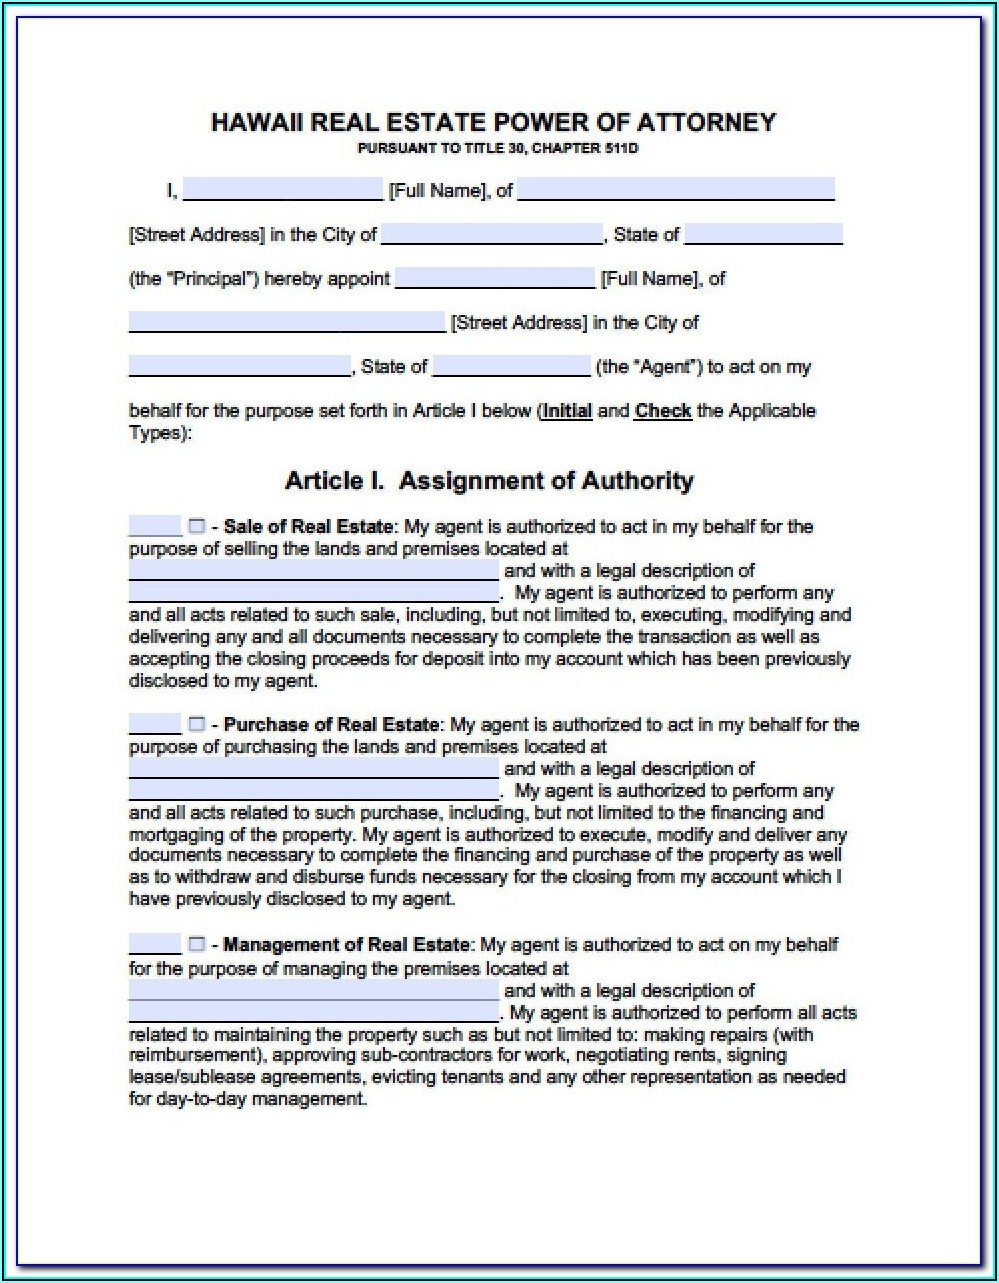 Dmv Power Of Attorney Form Hawaii